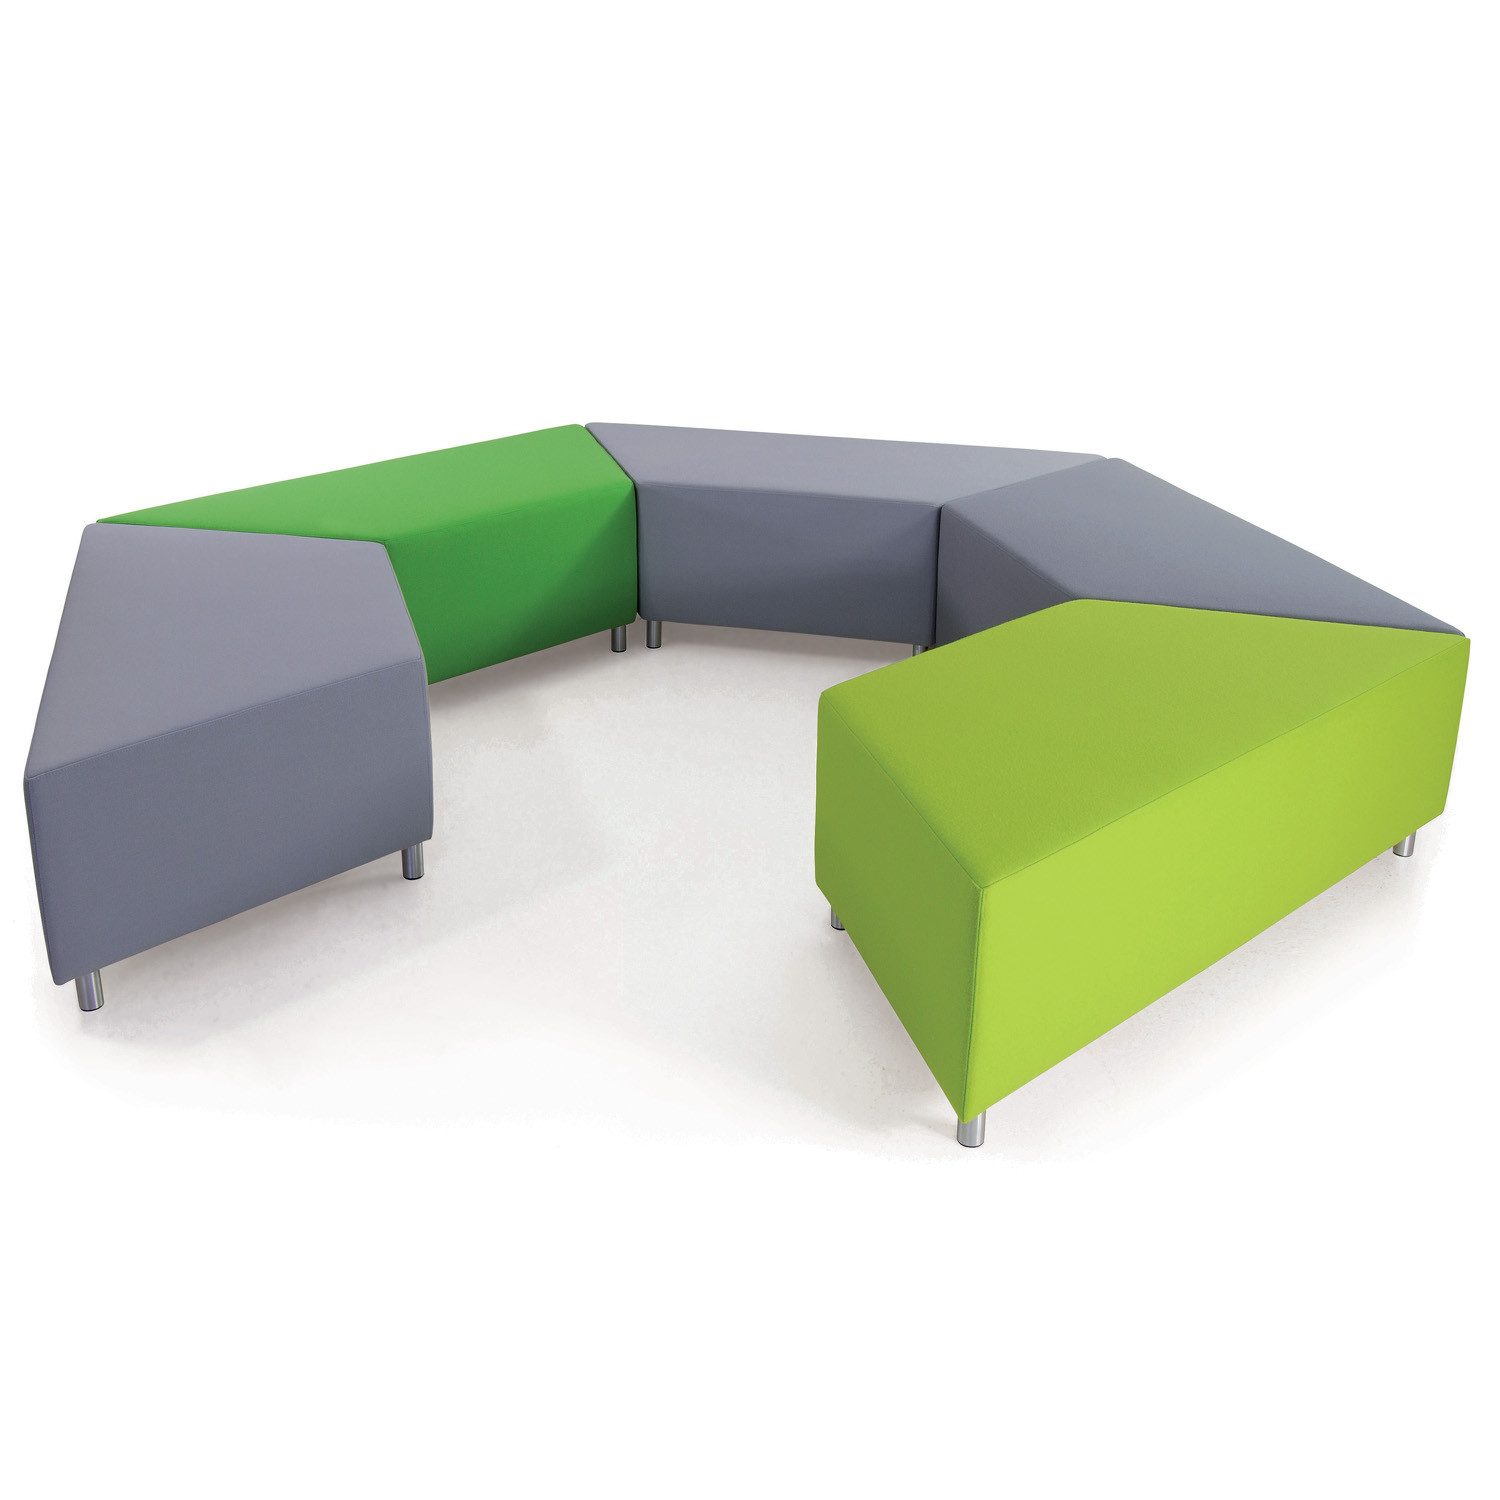 Hm42 Reception Modular Bench